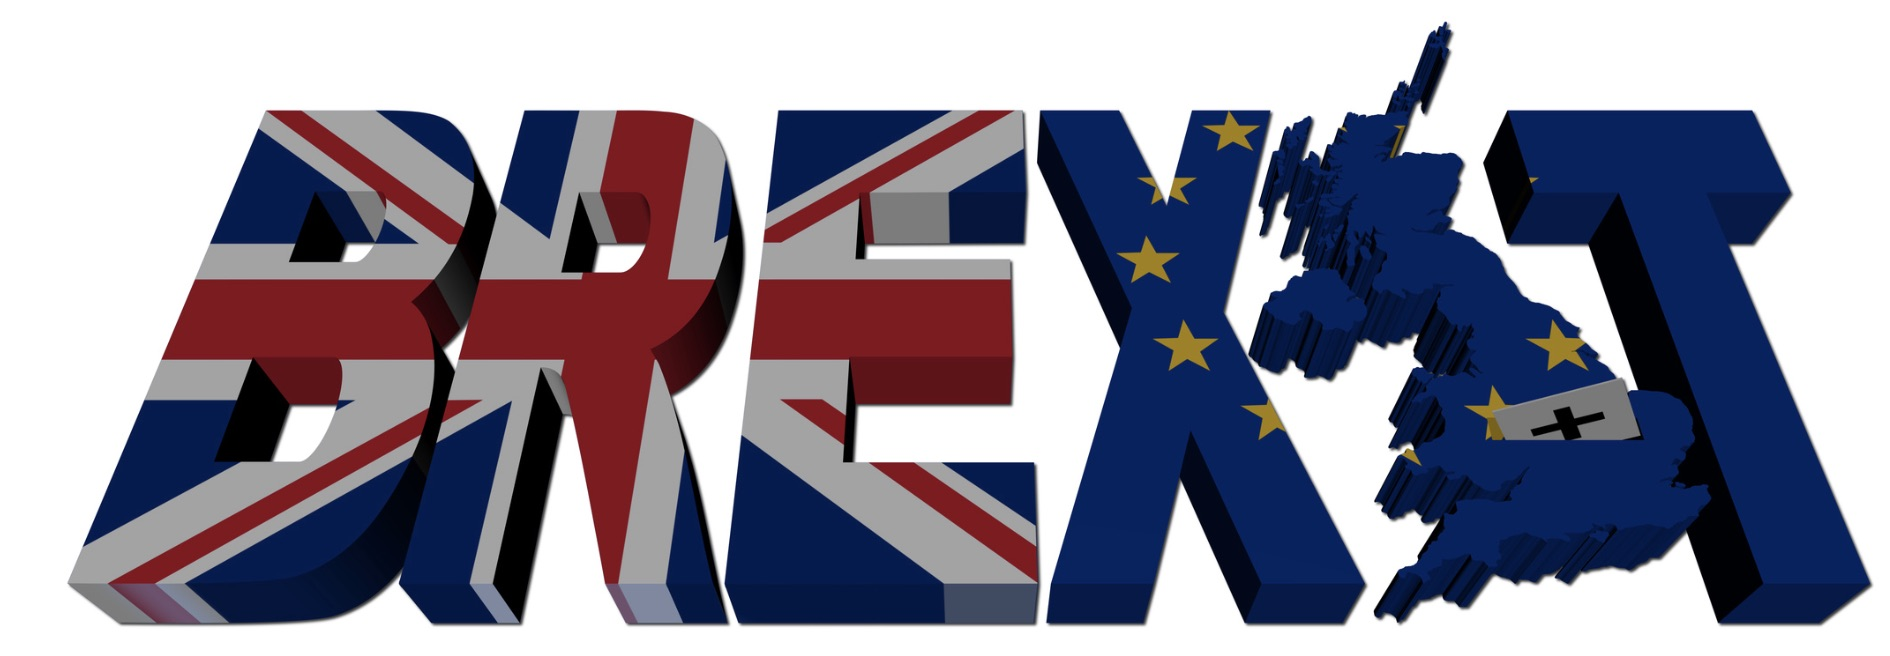 King World News - Paul Craig Roberts Just Exposed Why The Elites Had To Stop Brexit At All Costs